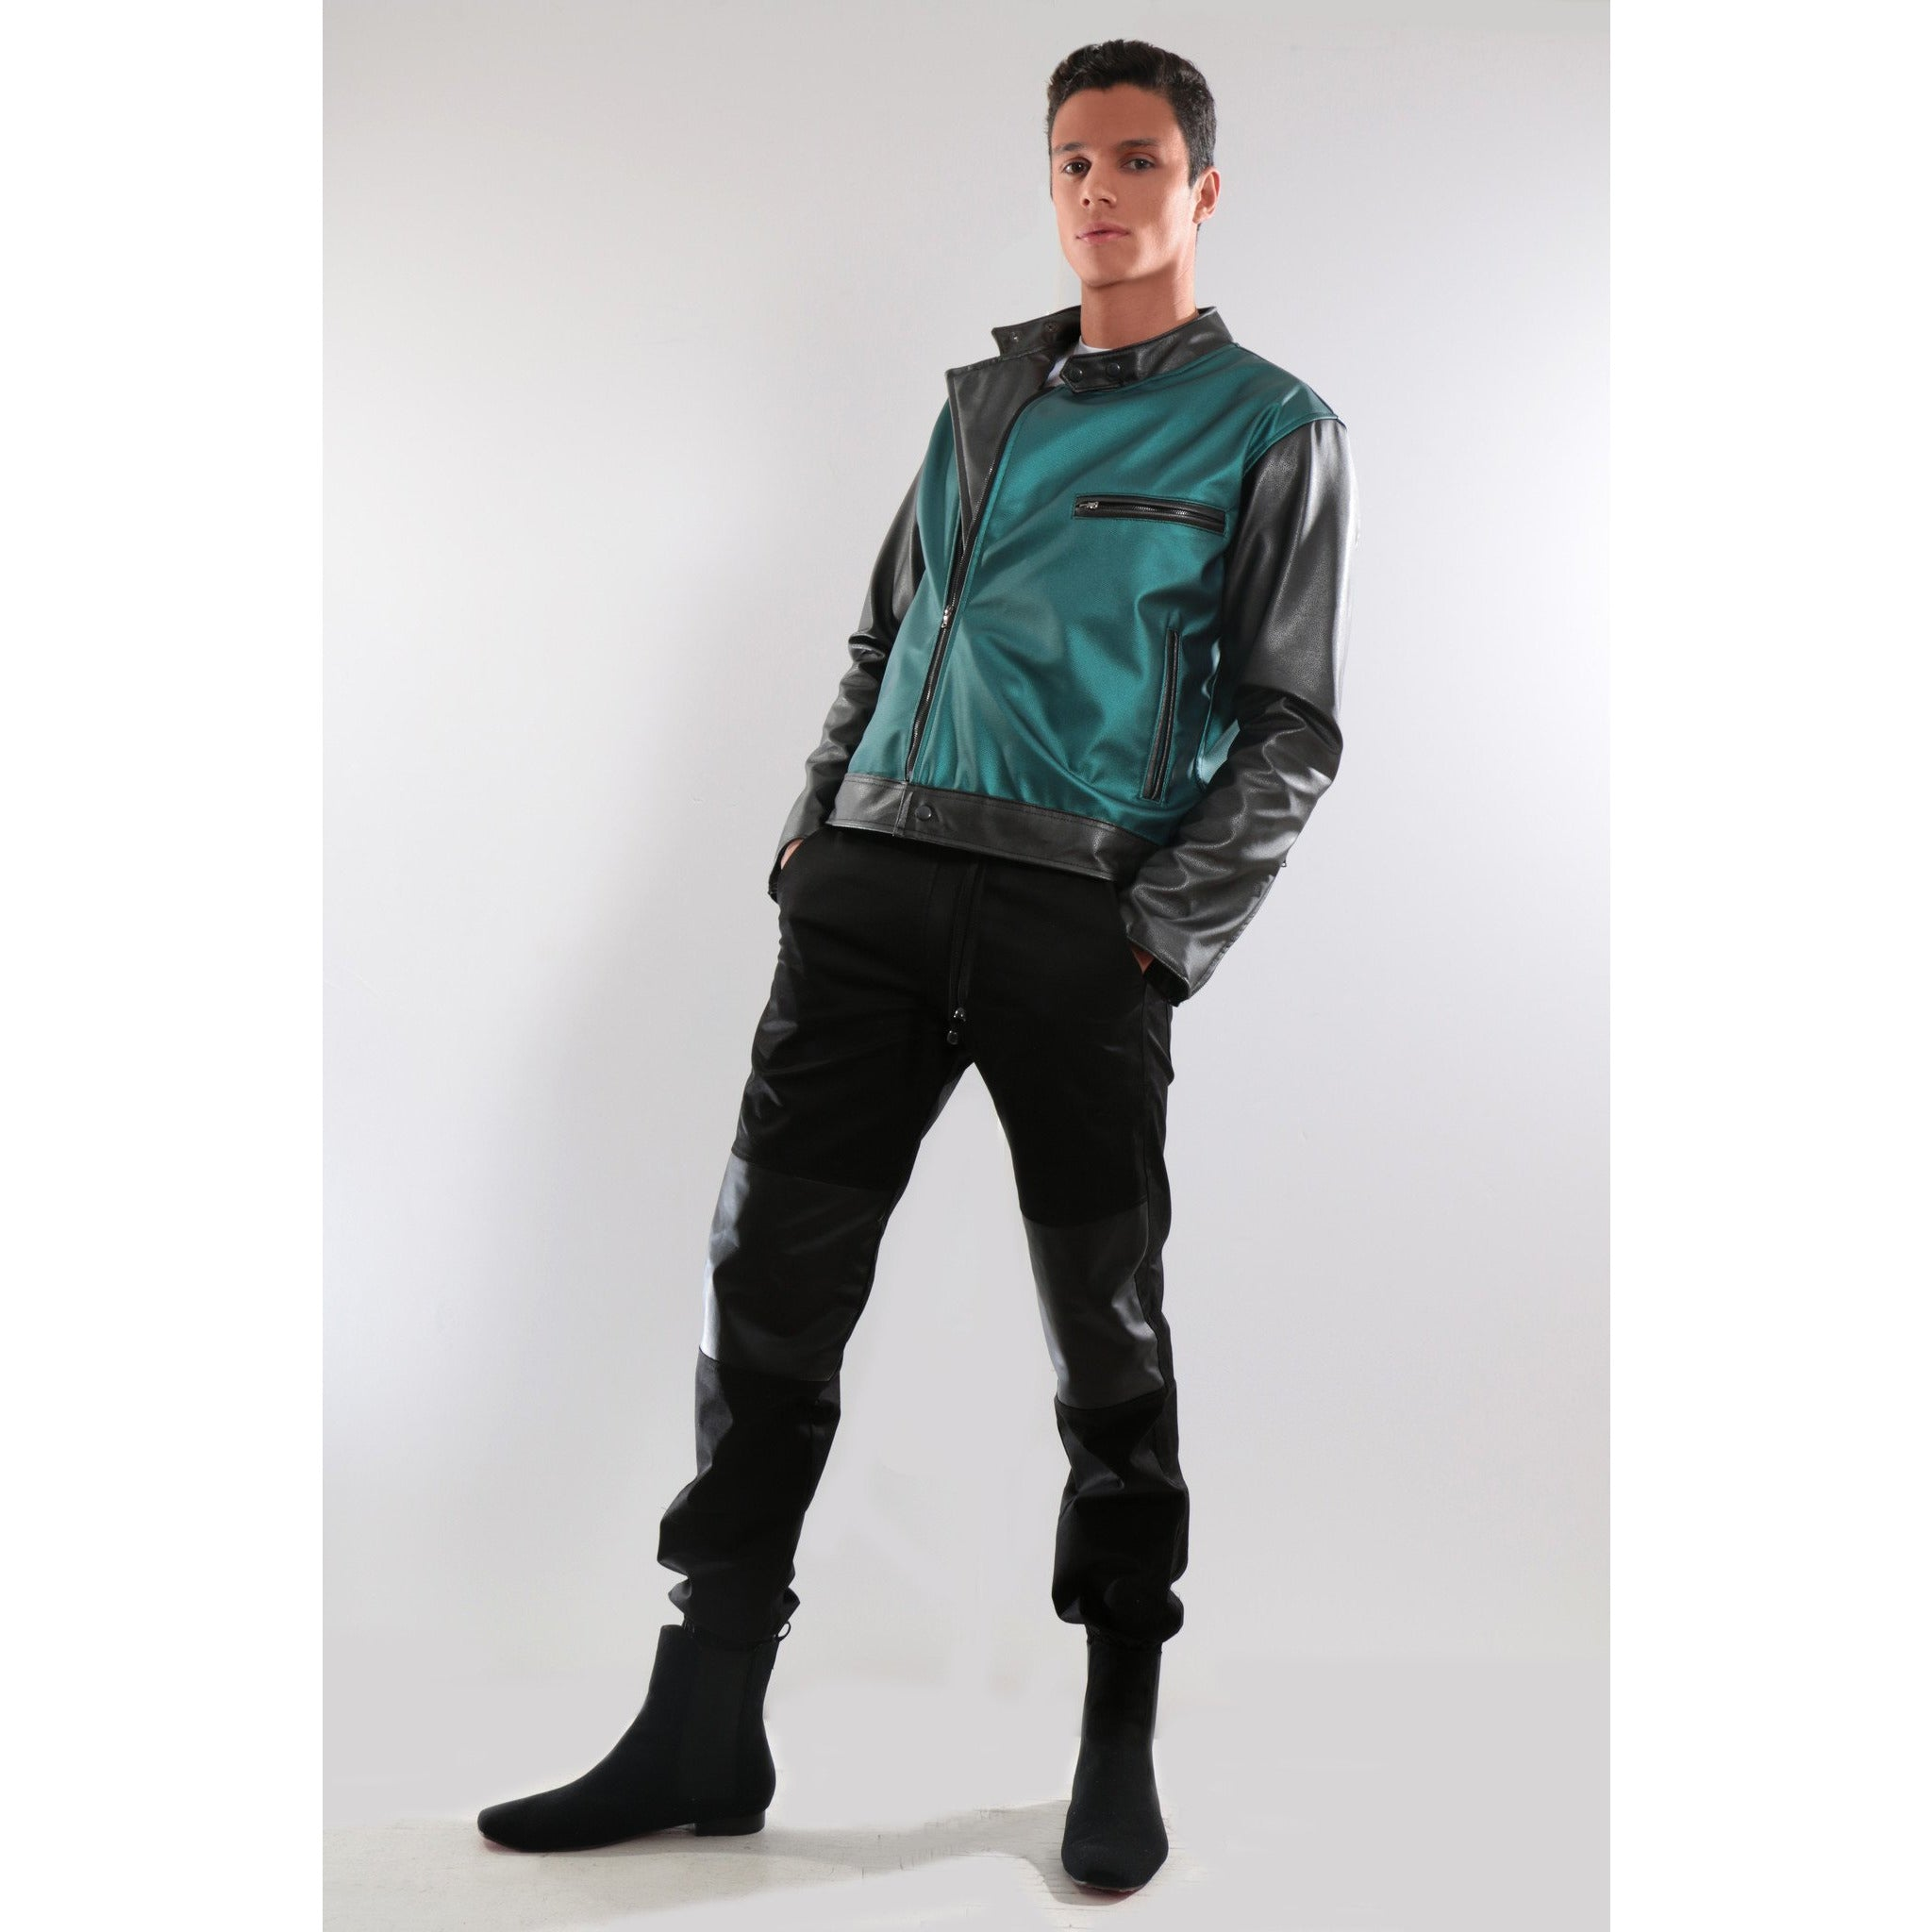 3D Print Green and black leather Jacket